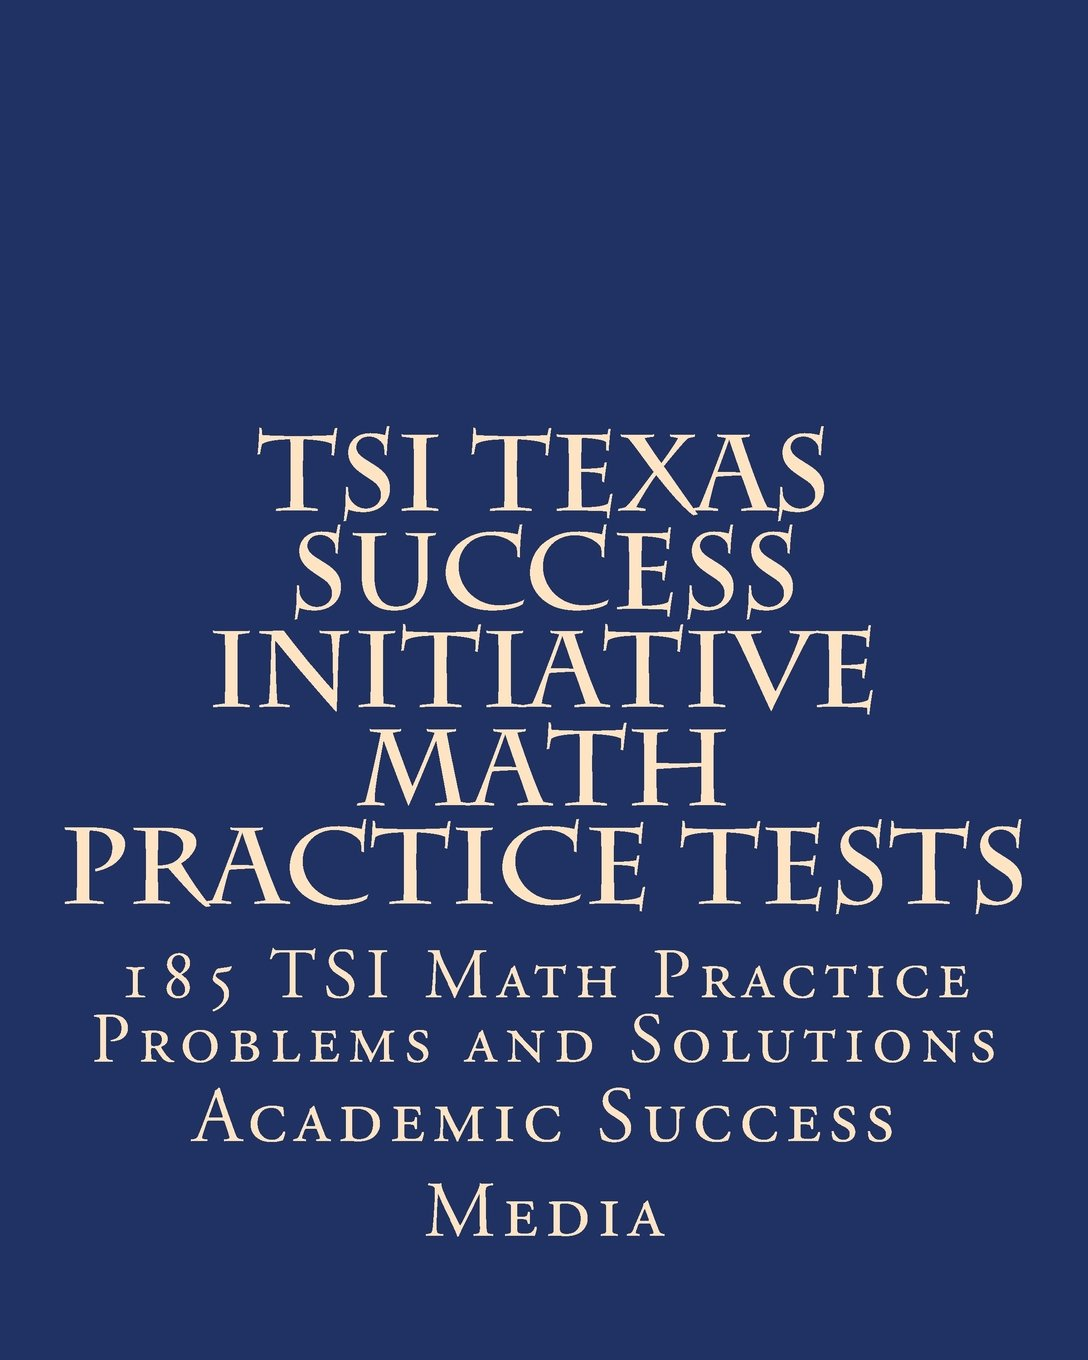 photo about Printable Tsi Practice Test named TSI Texas Results Initiative Math Train Assessments: 185 TSI